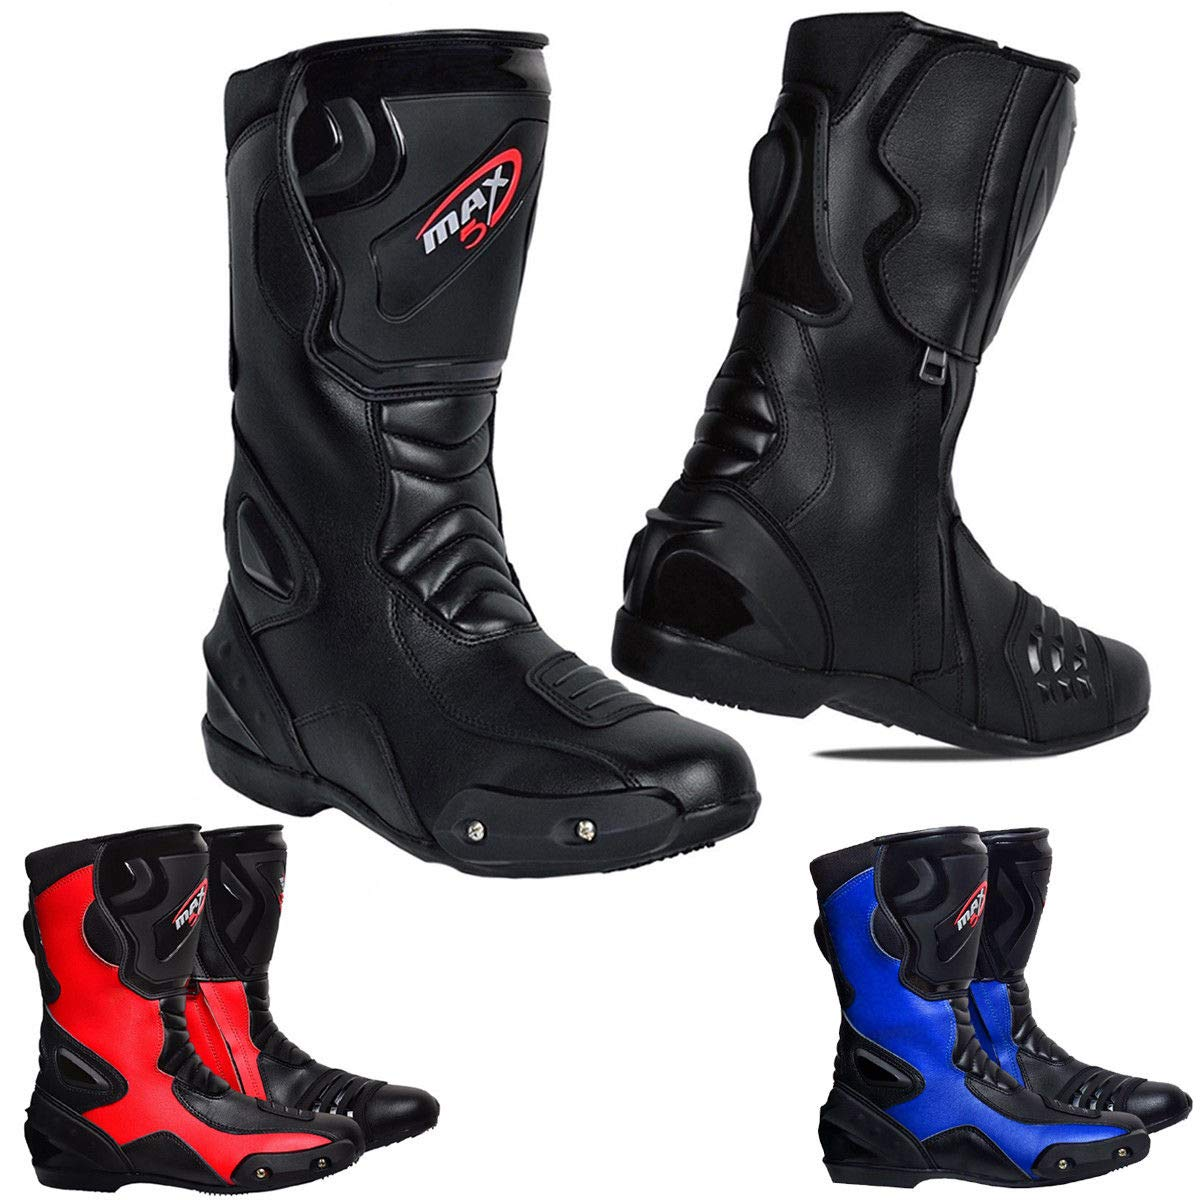 Max5 Waterprof Motorbike Leather Boots Sports Race Motorcycle Mens Touring Shoes Motorbike Blue, Black, Red CE Approved Armoured Boots (Red, 5 UK) STNG-007